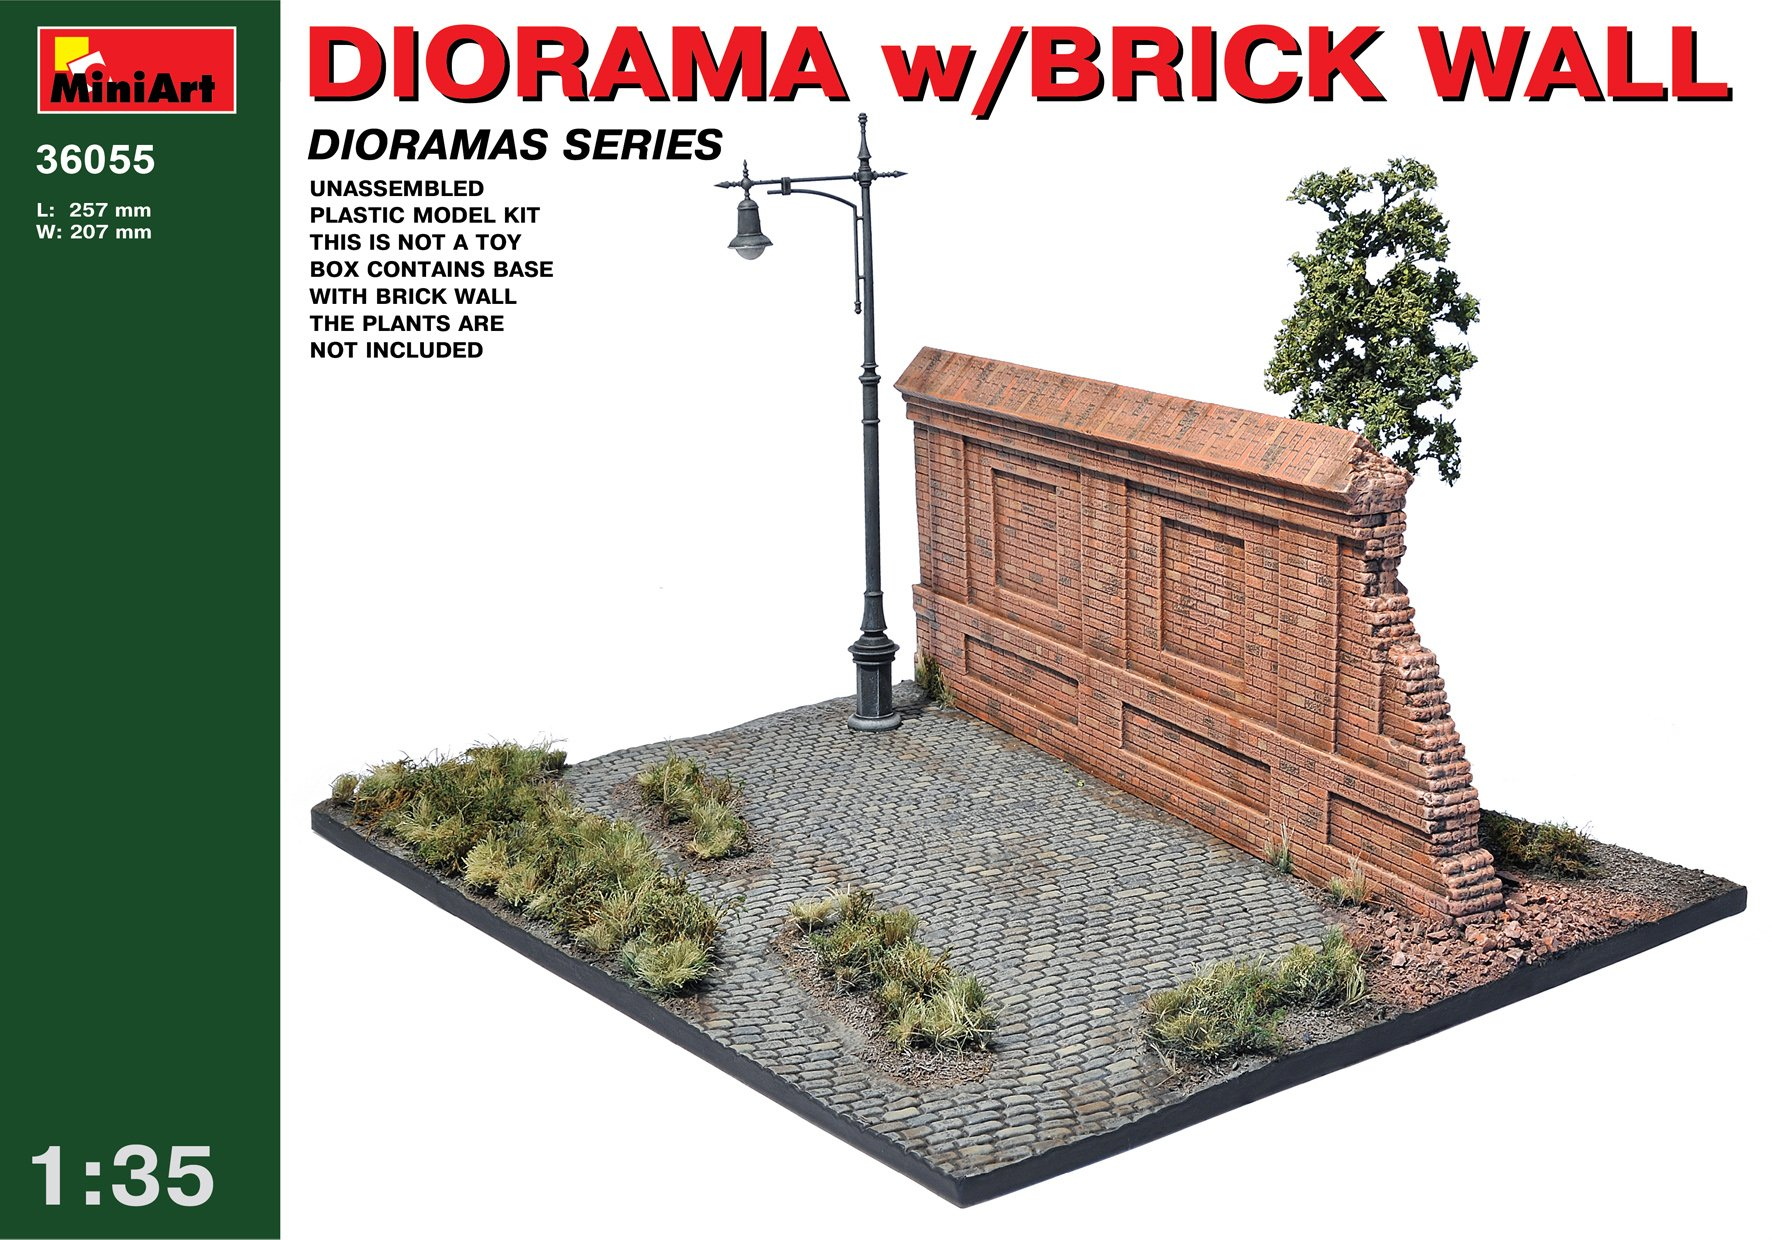 MiniArt 1:35 Scale Diorama with Brick Wall Plastic Model Kit by MiniArt (Image #5)